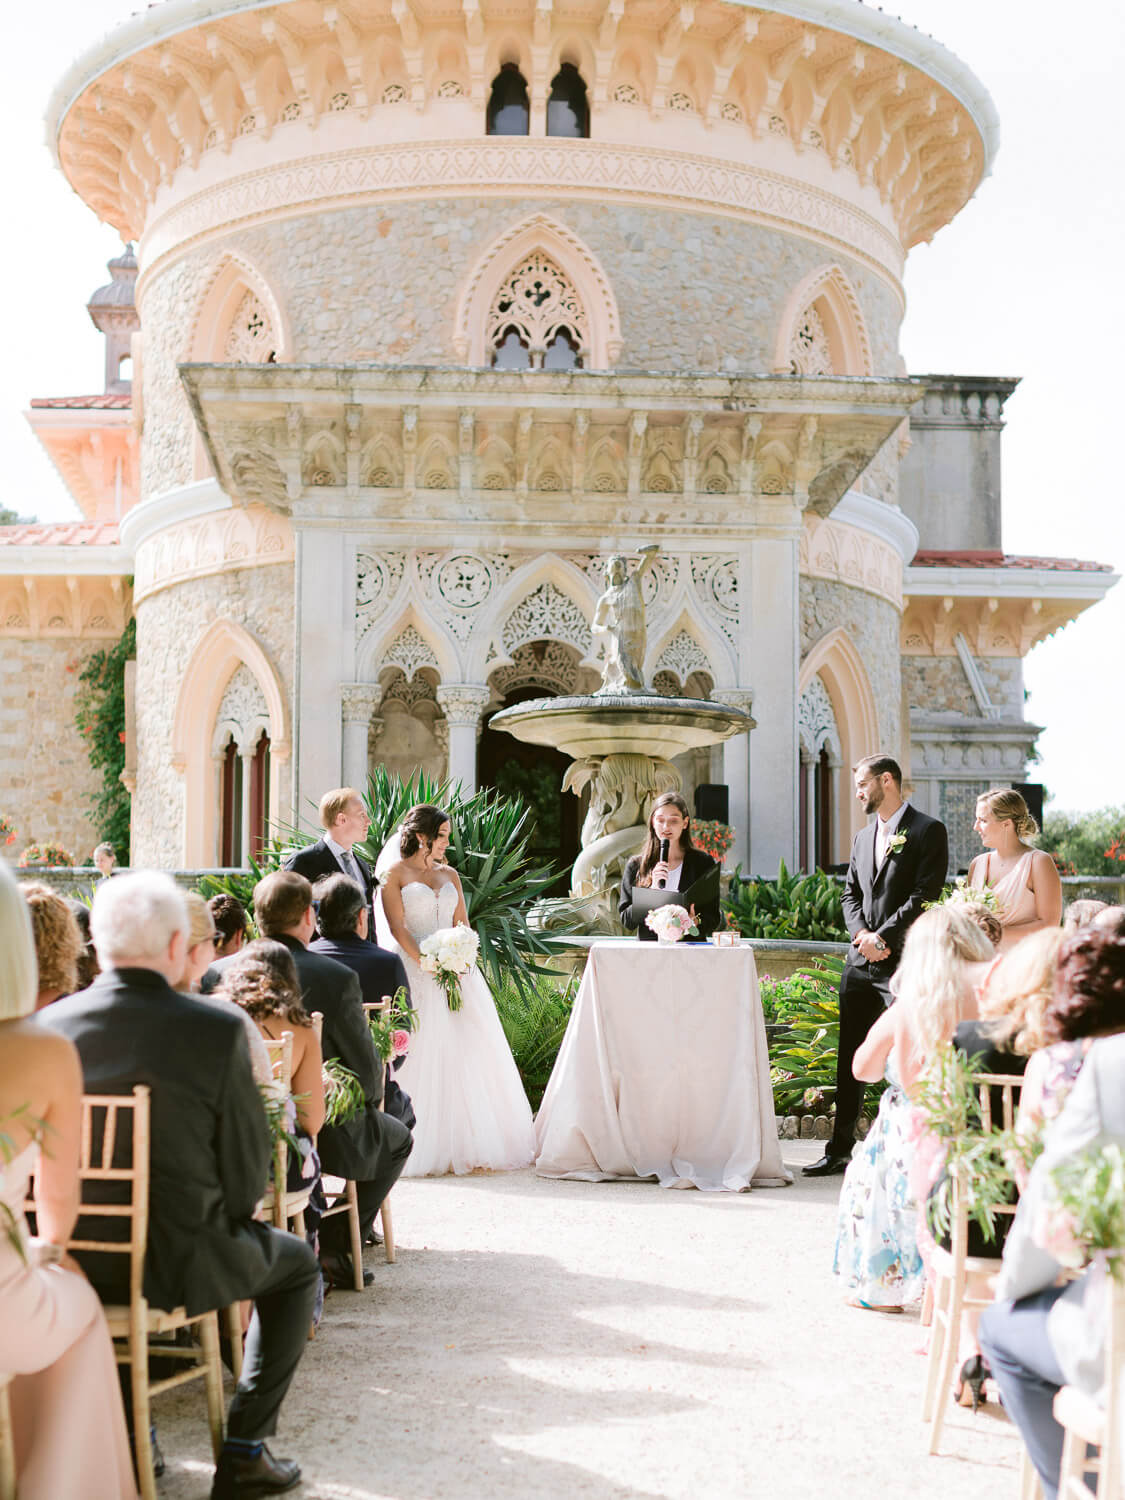 outdoor wedding ceremony in Monserrate Palace Sintra by Portugal Wedding Photographer